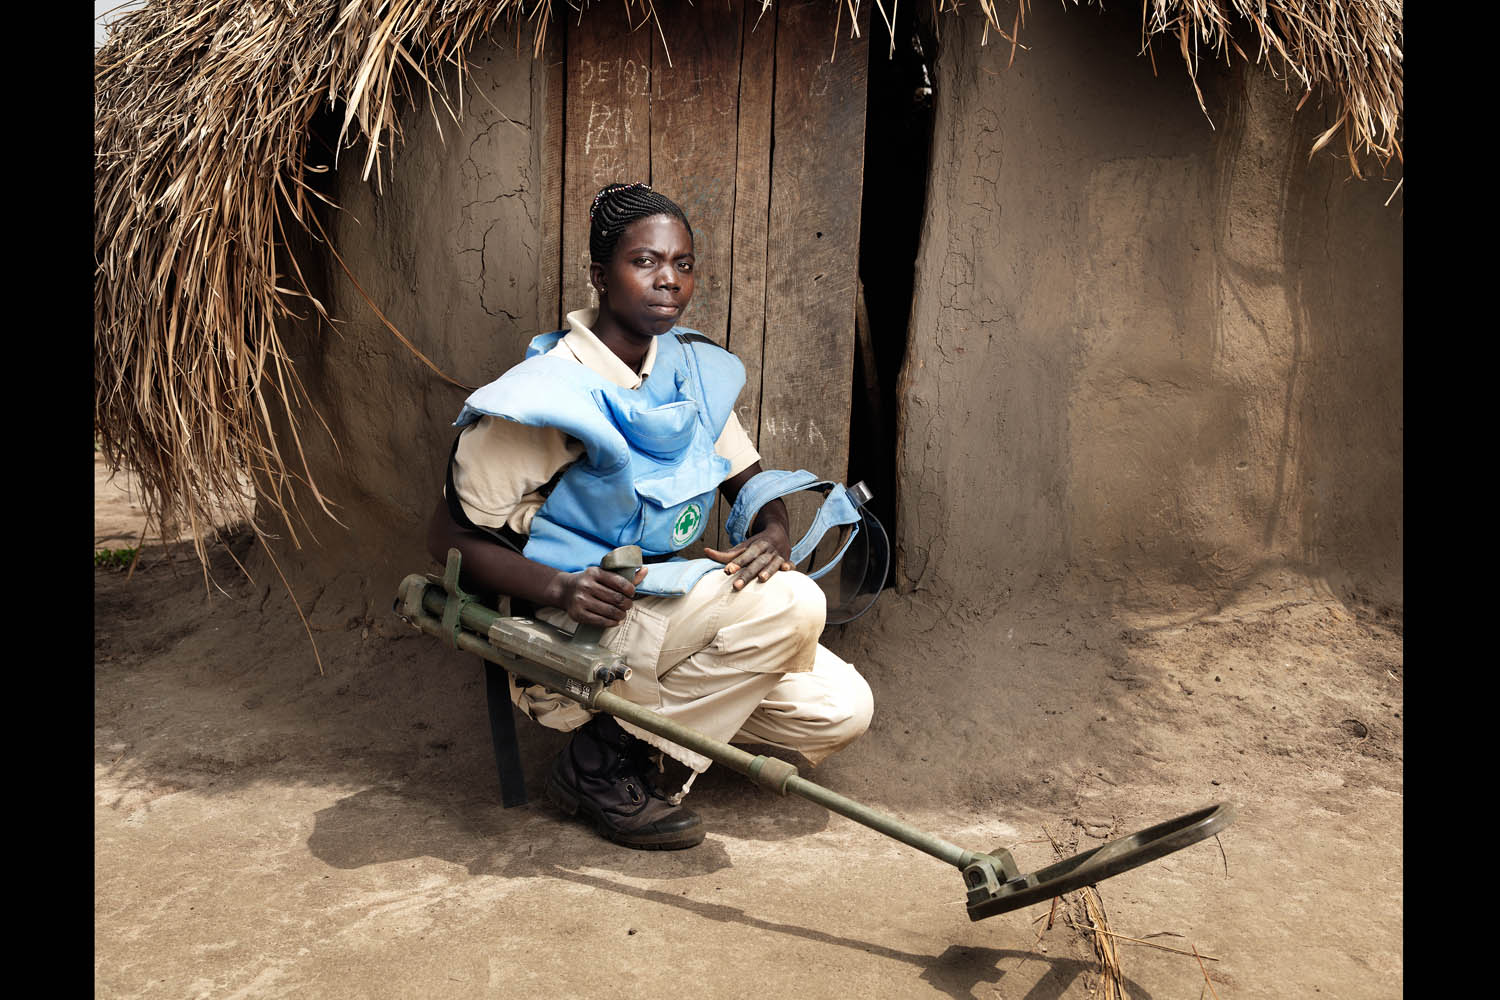 Juwa Stella is a deminer on an all-female demining team in Yei, South Sudan.